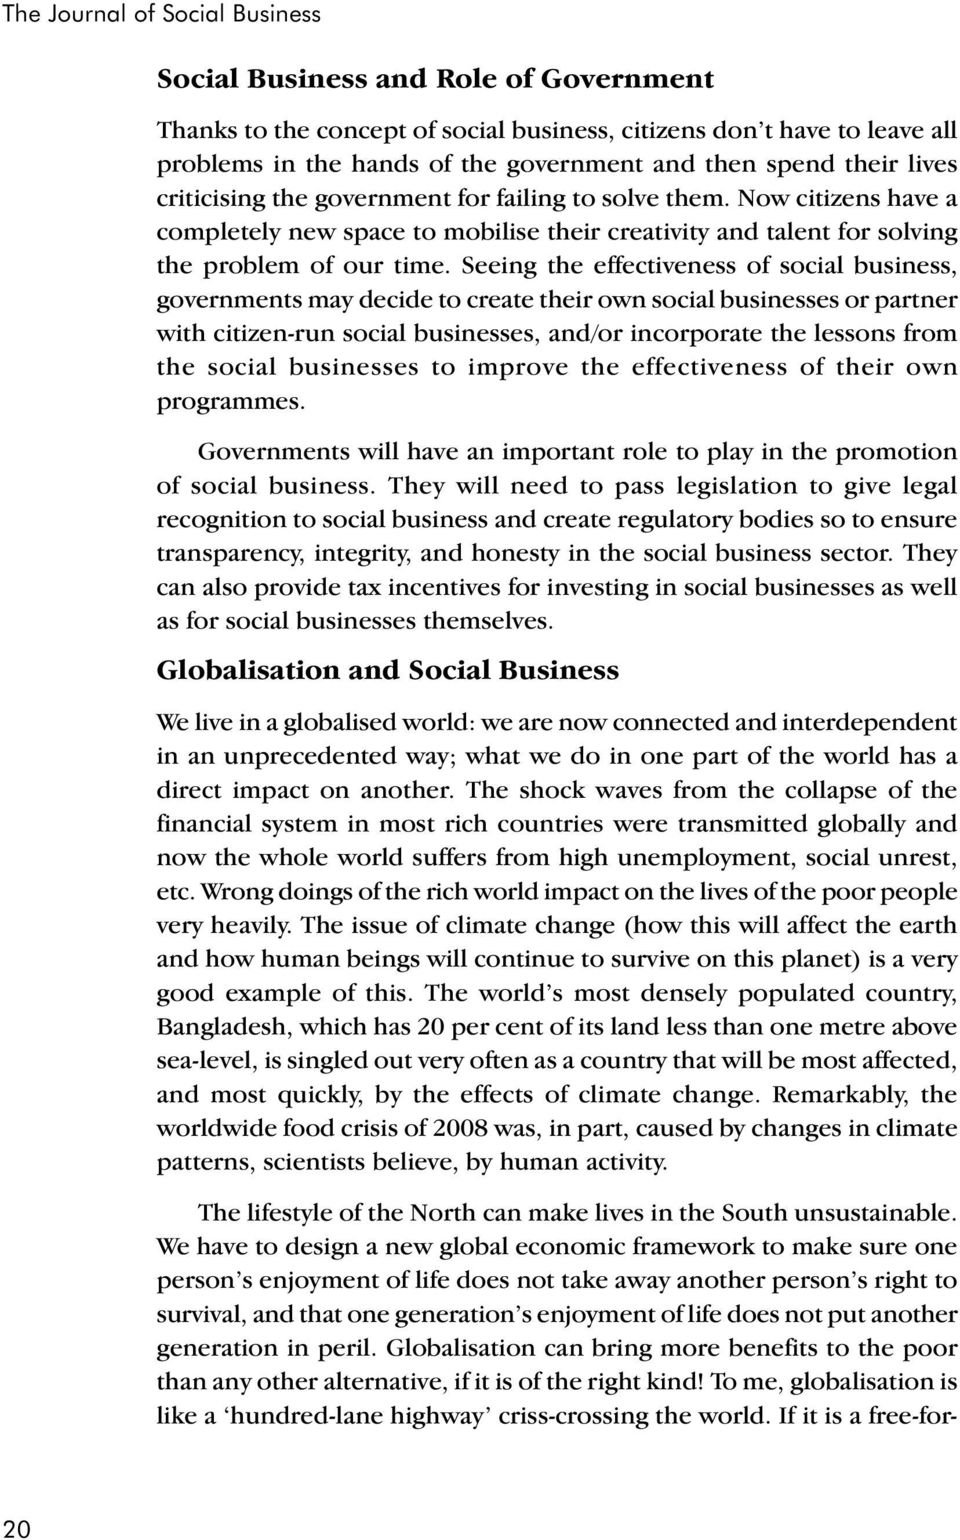 Seeing the effectiveness of social business, governments may decide to create their own social businesses or partner with citizen-run social businesses, and/or incorporate the lessons from the social